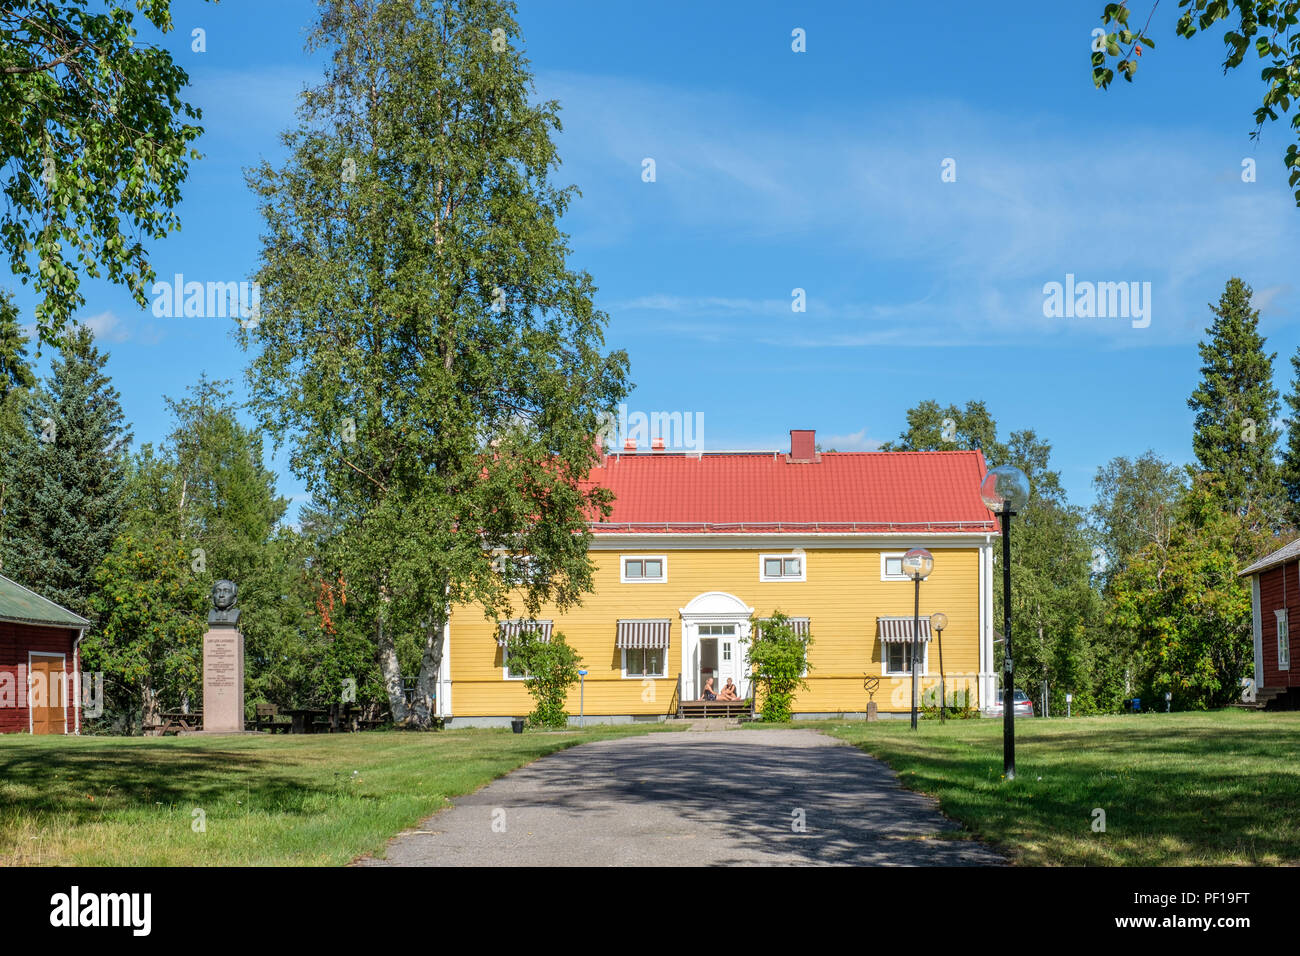 The manse in Pajala in northern Sweden. Today it is a museum in honor of priest Lars Levi Laestadius - Stock Image